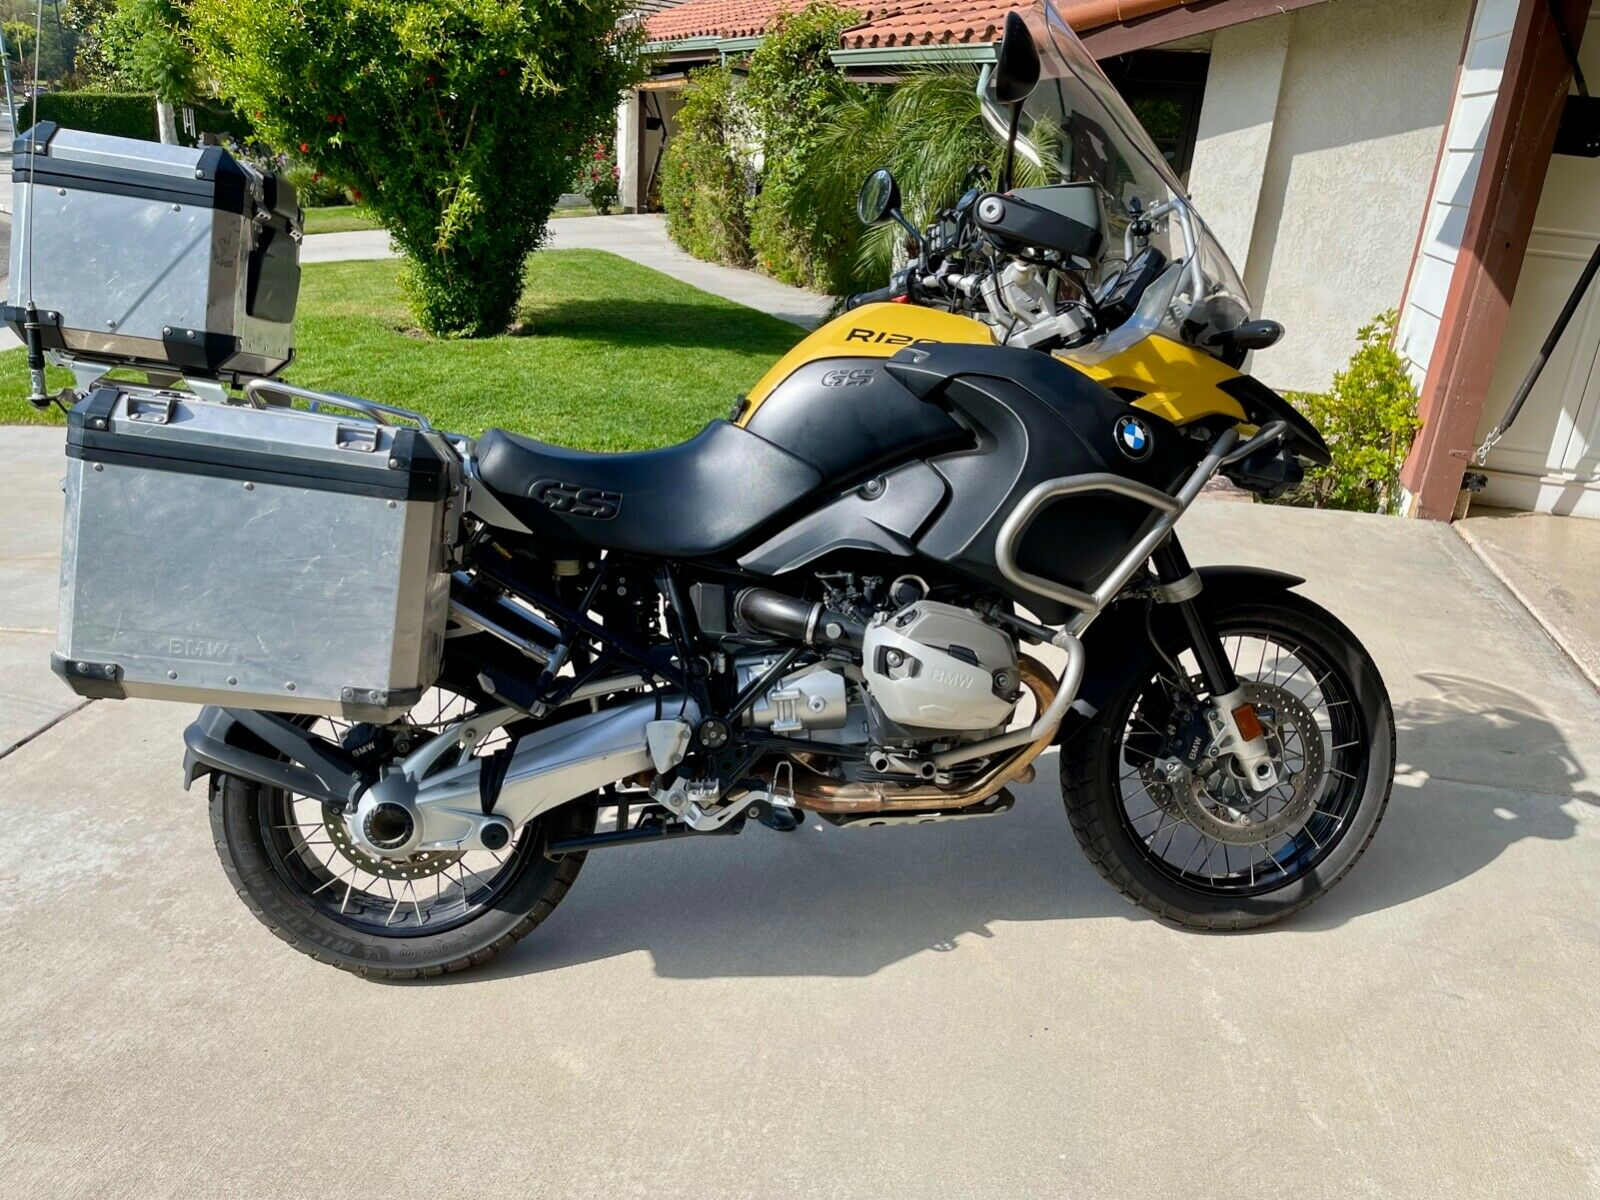 2010 BMW R1200GS Adv. Low mileage. One owner since new.  Perfect condition.